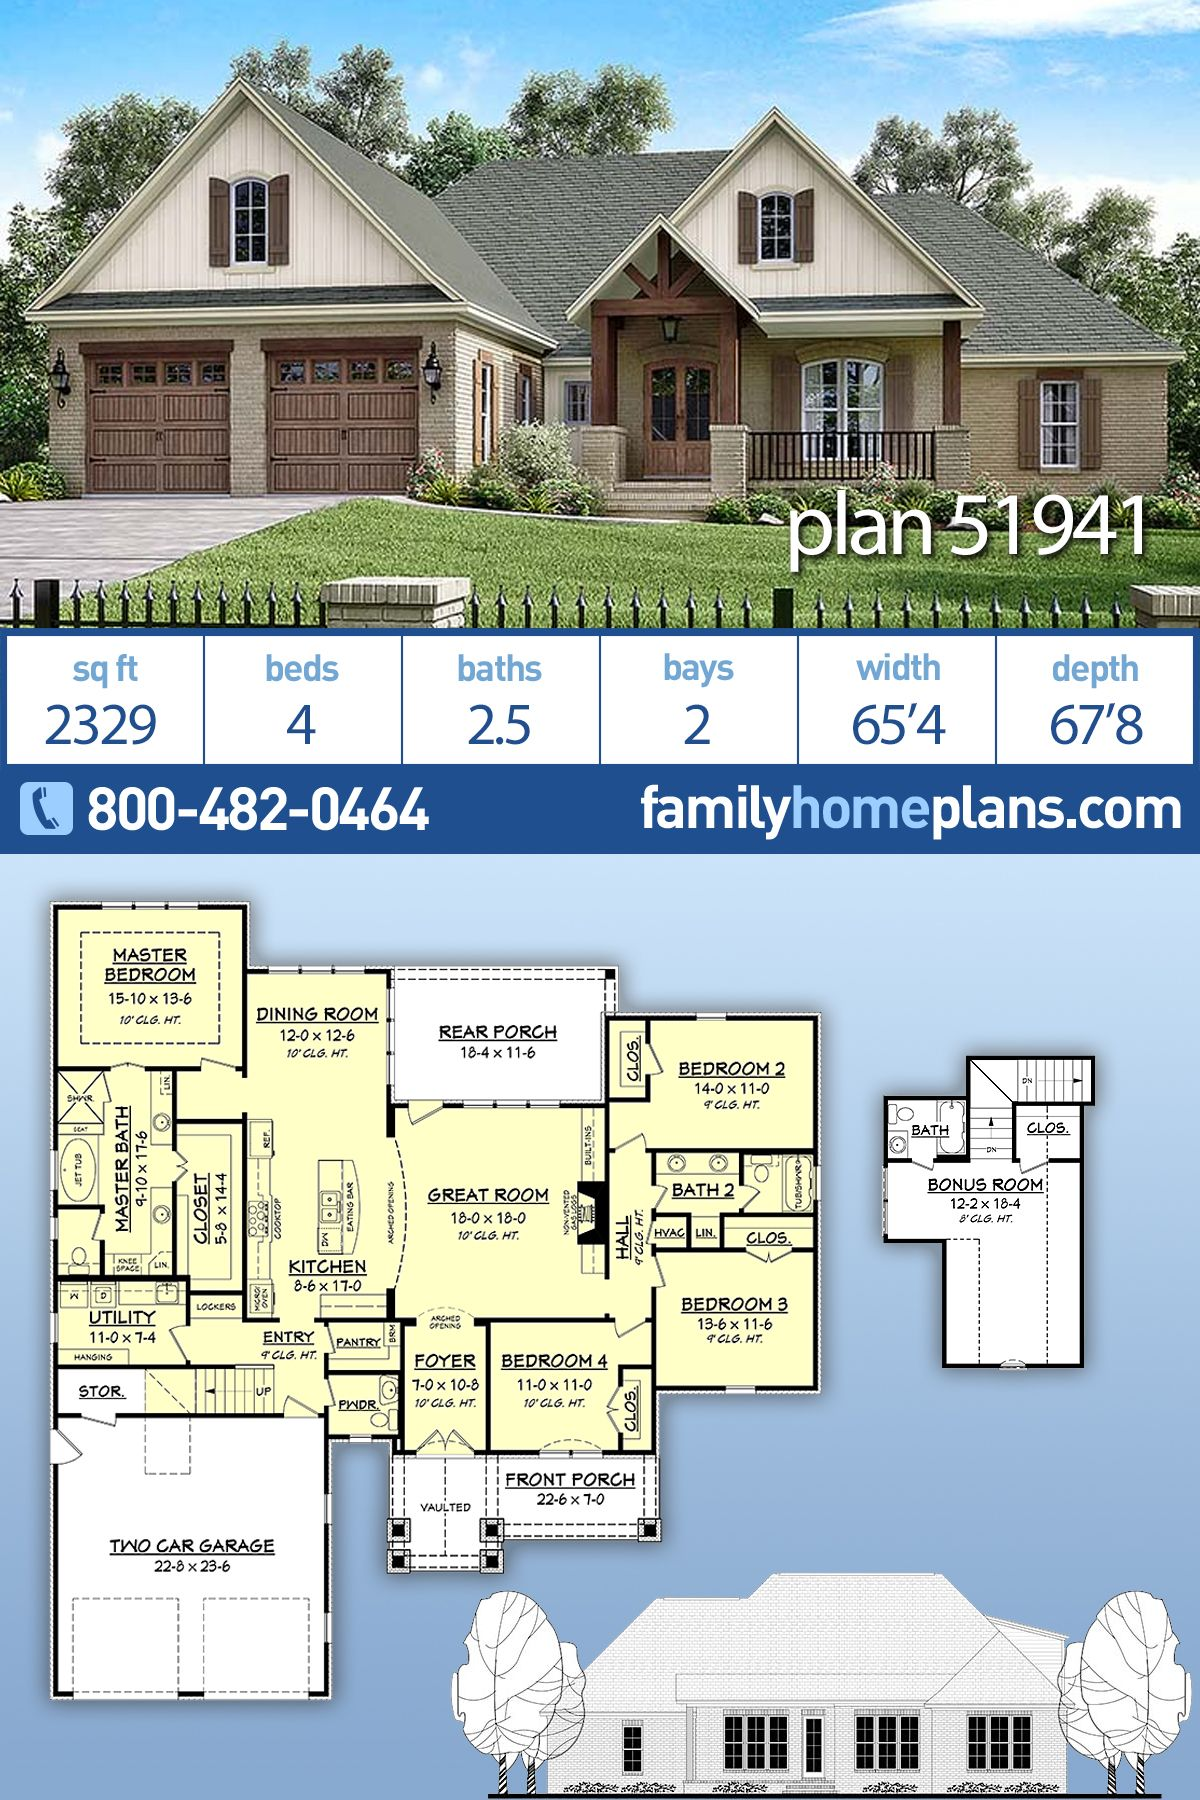 Traditional Style House Plan 51941 With 4 Bed 3 Bath 2 Car